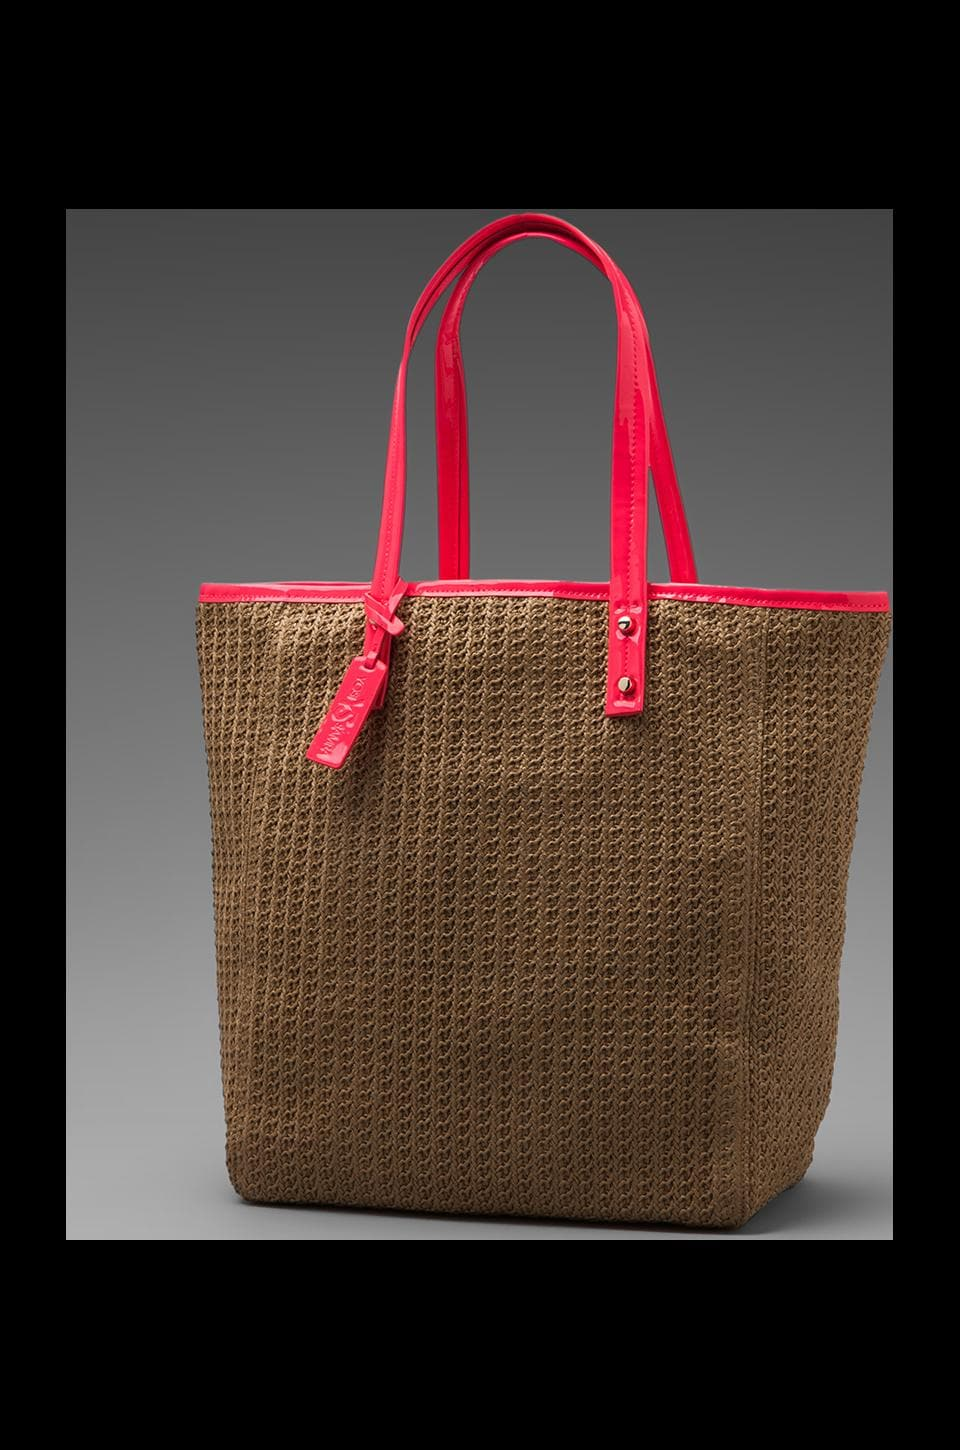 Yosi Samra Basket Weave Bag in Natural/Neon Pink